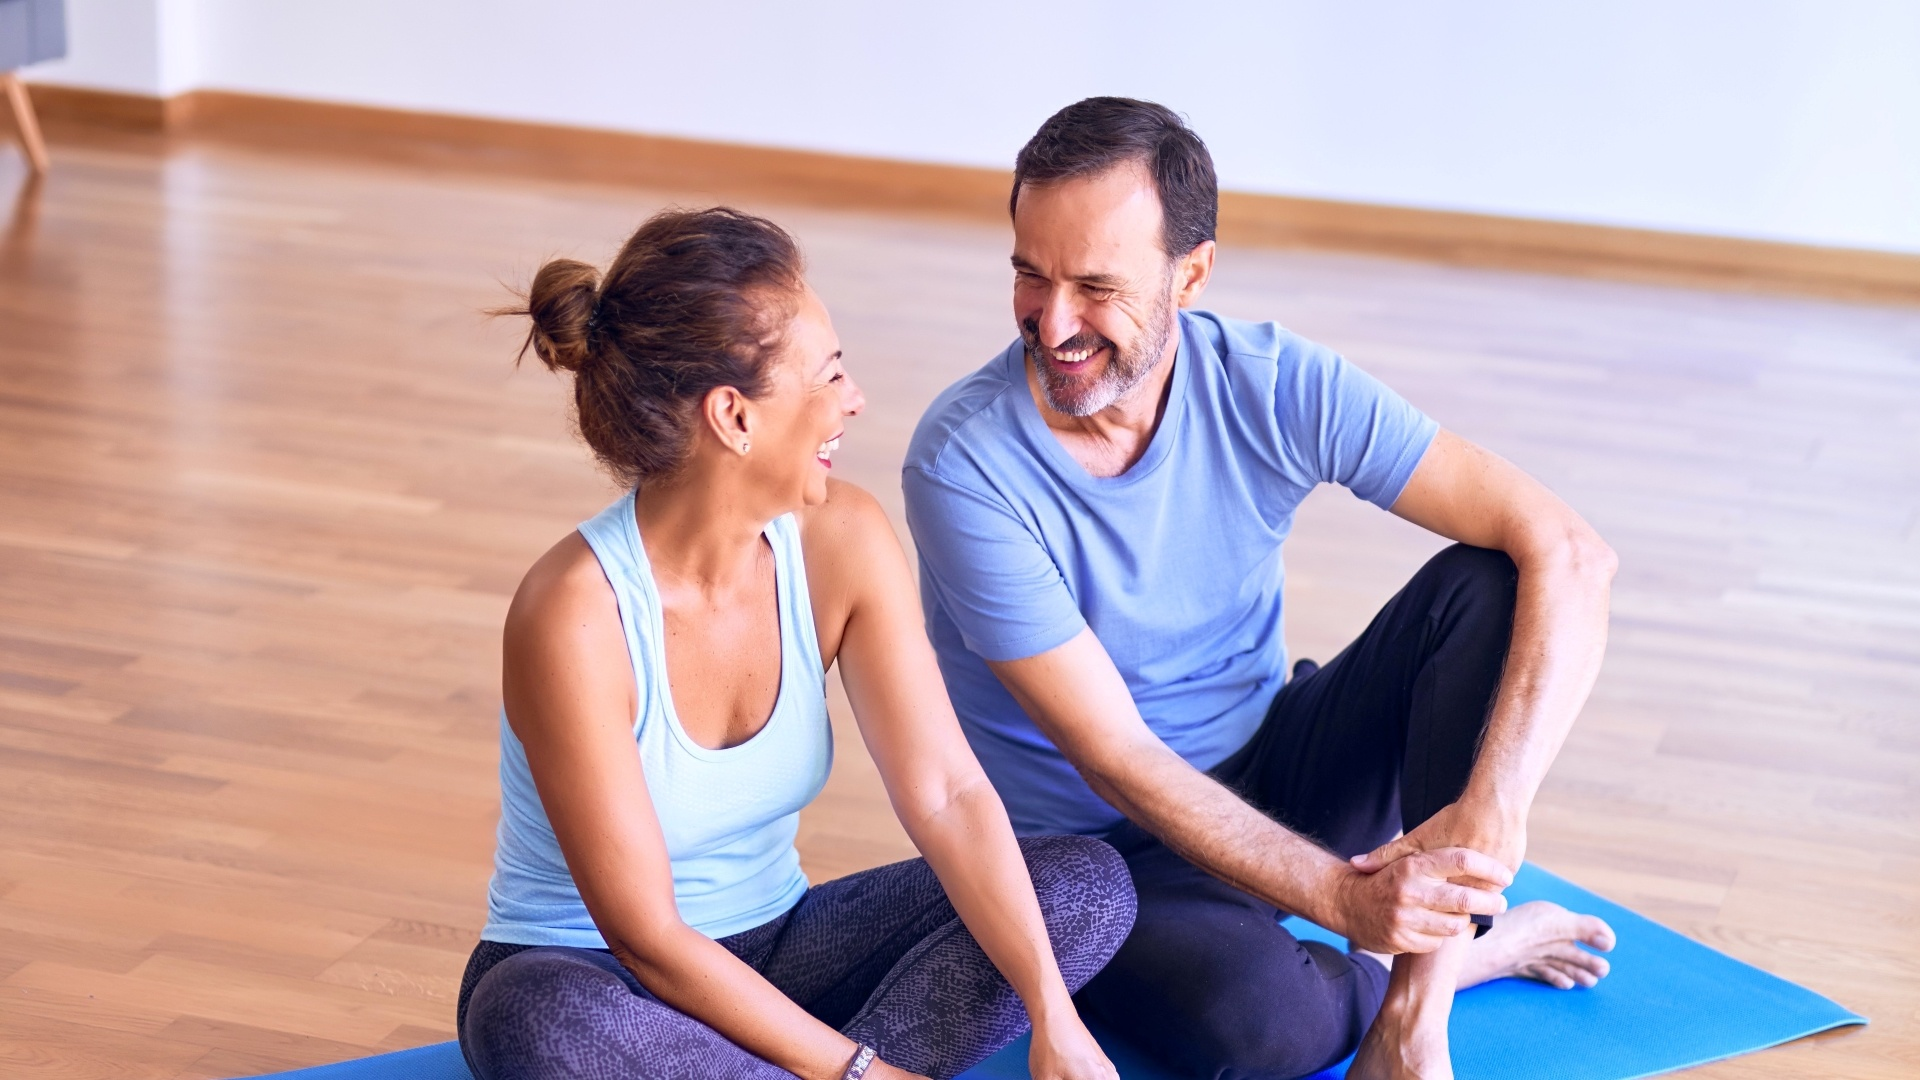 happy middle aged couple doing couples yoga during covid-19 pandemic